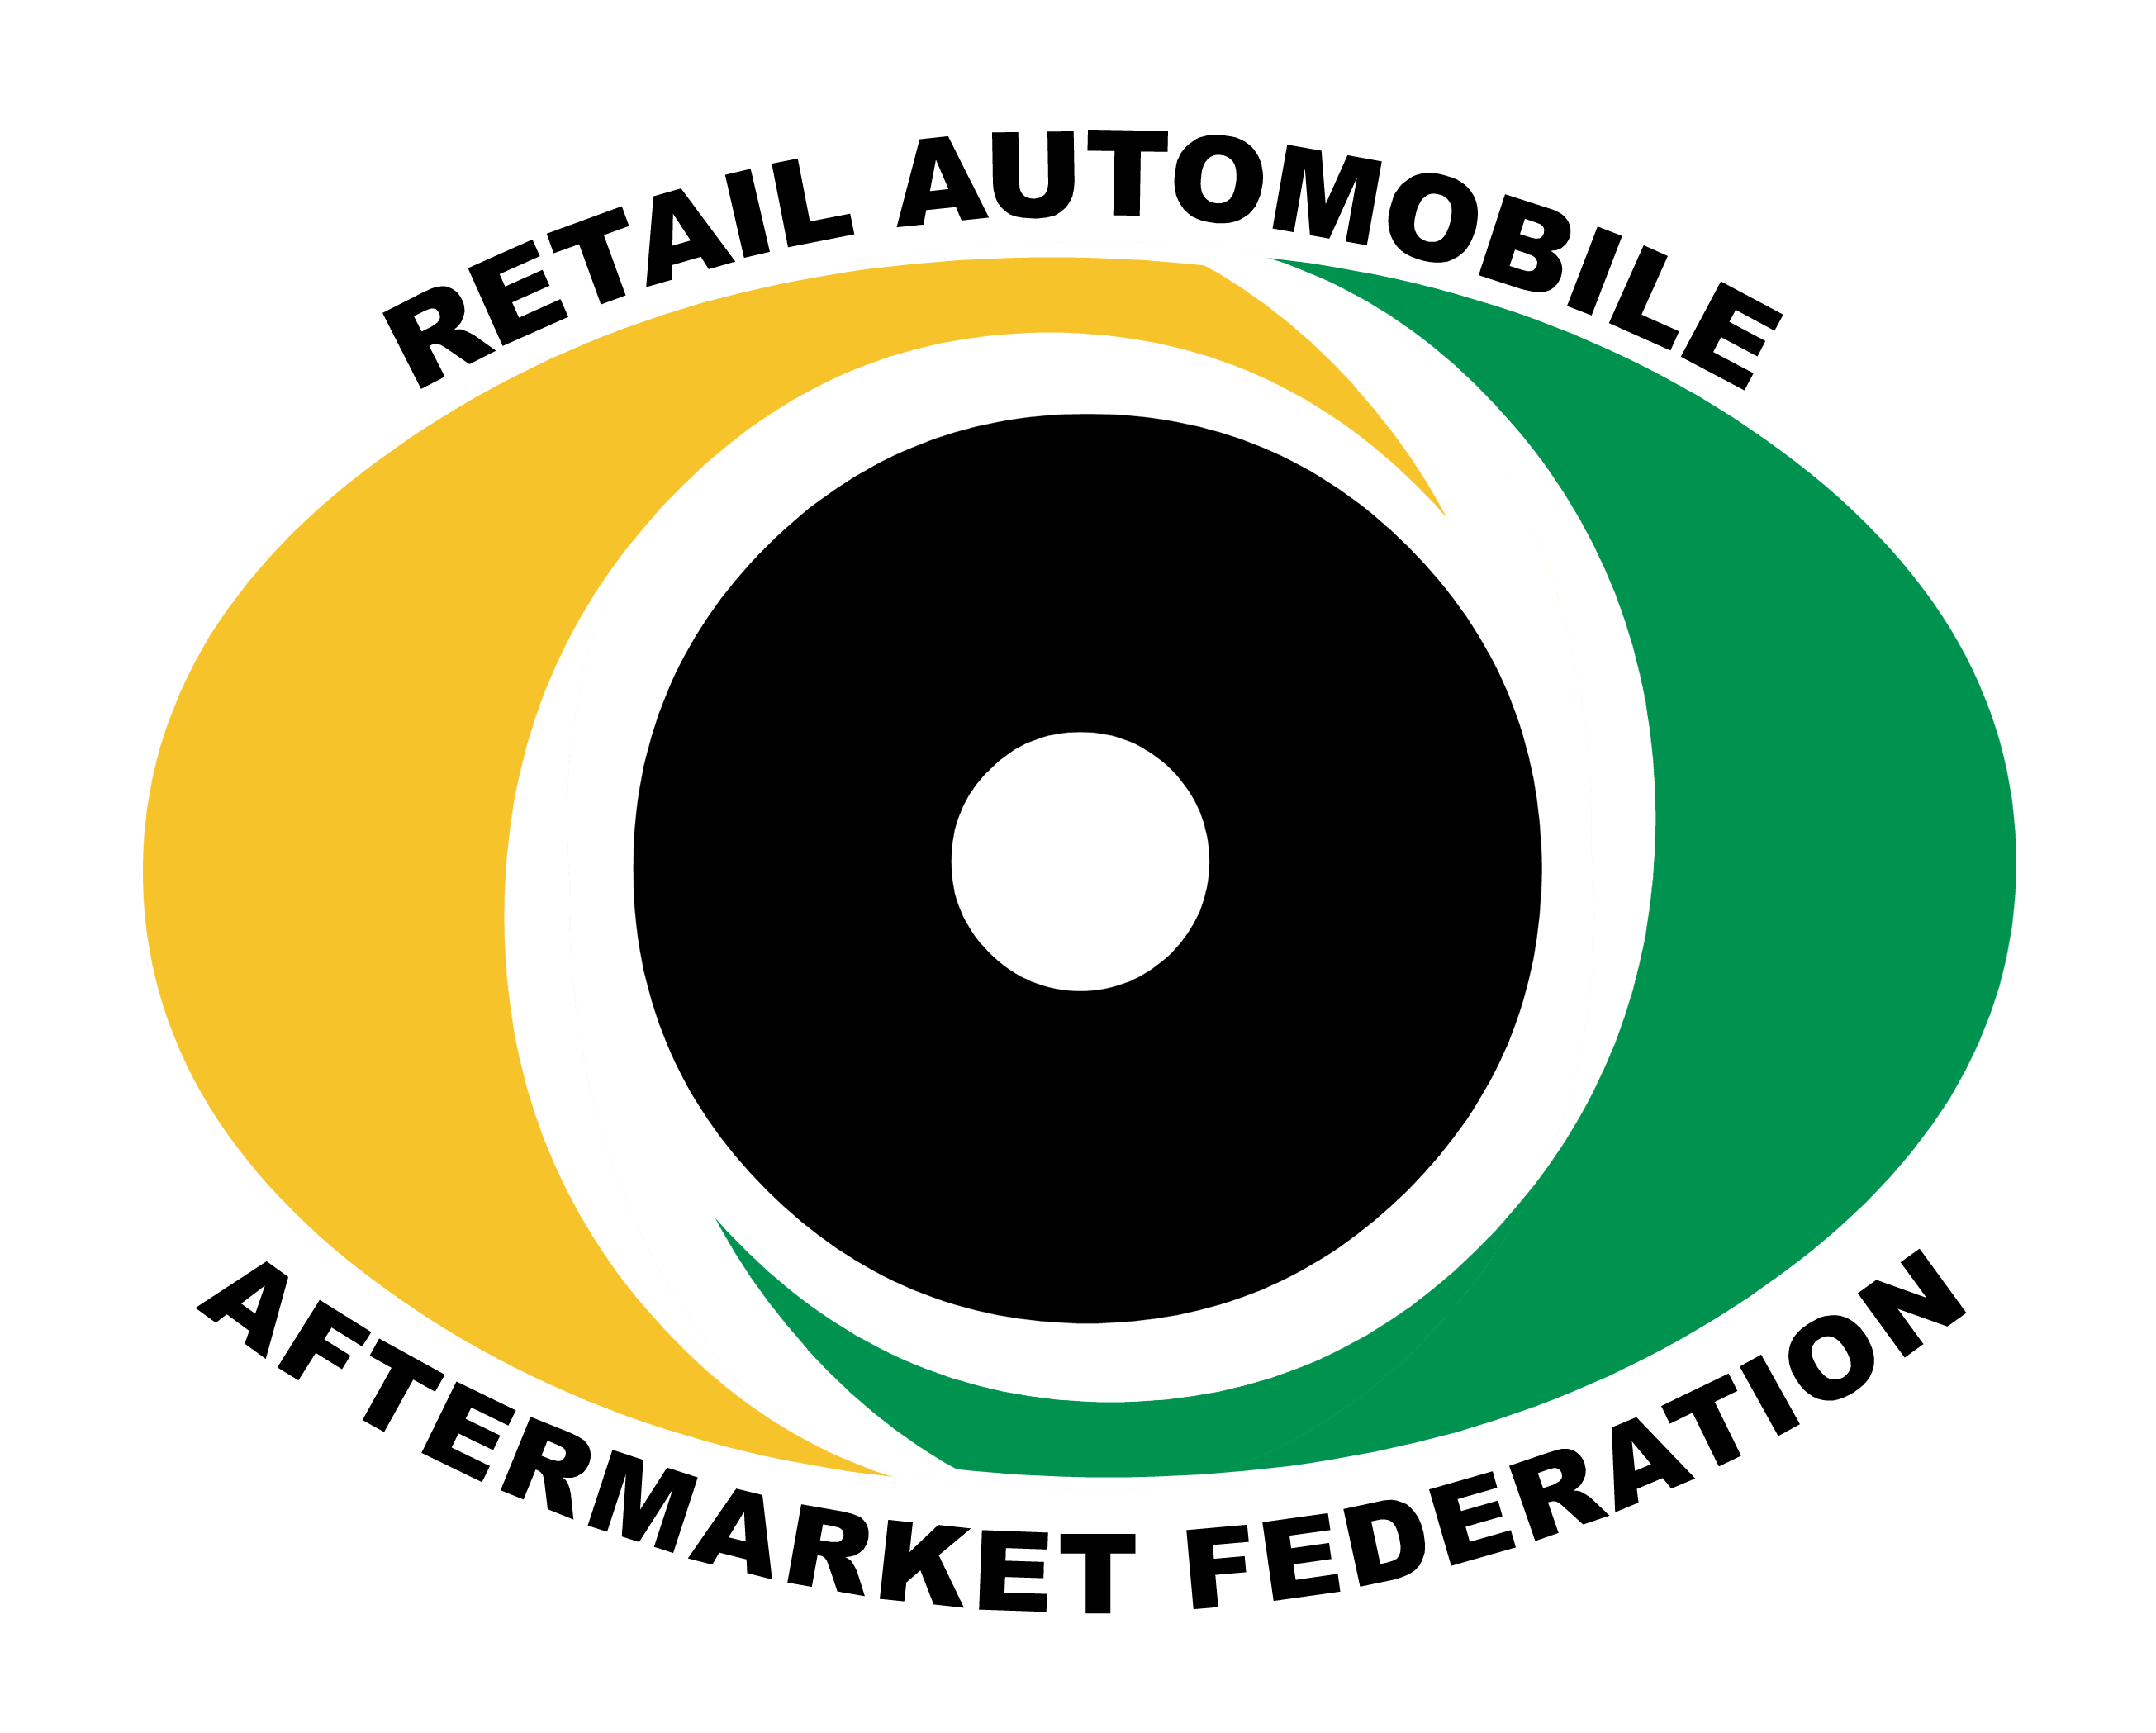 RAAF - Retail Automobile Aftermarket Federation (RAAF)